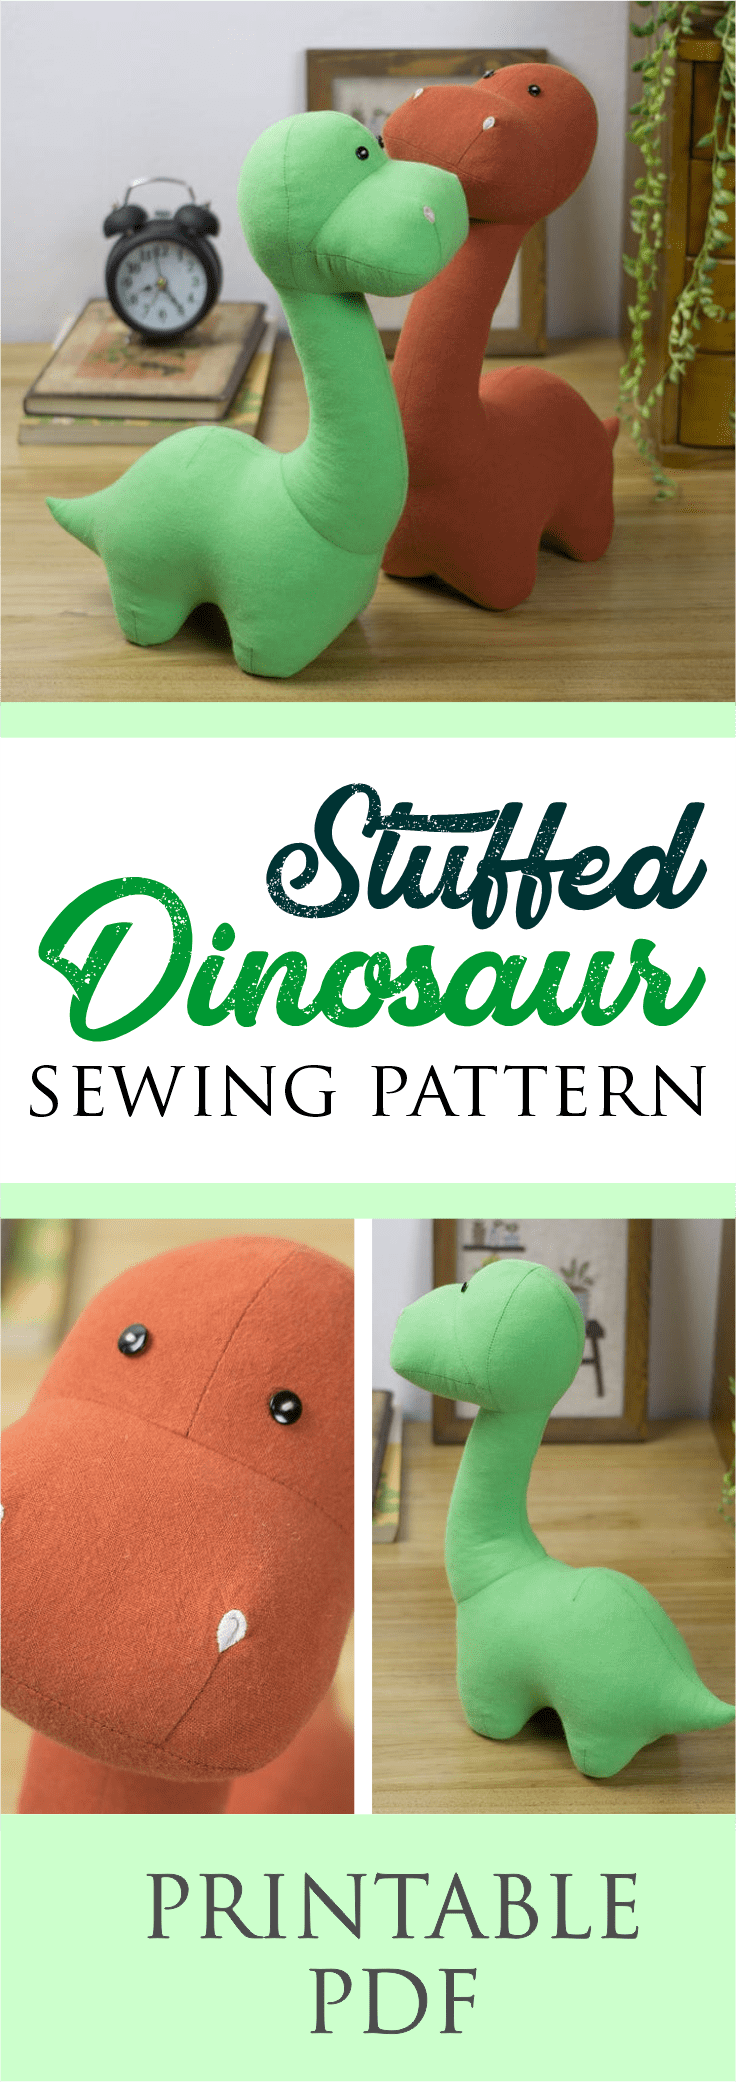 Stuffed Dinosaur Sewing Pattern | Instantly Downloadable PDF